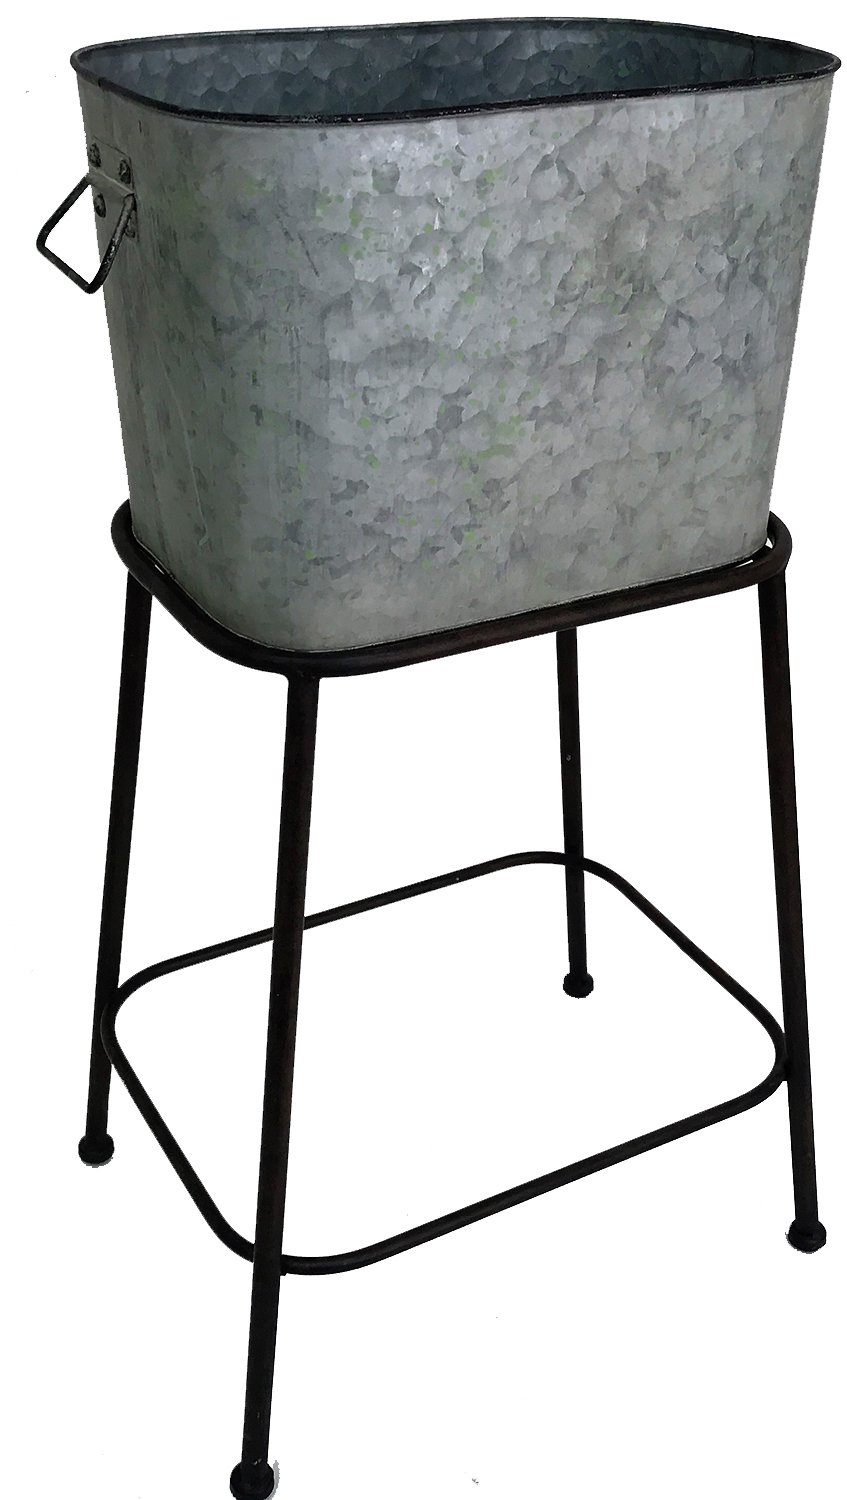 Galvanized Wash Tub With Stand Ice Bucket Planter Cheap